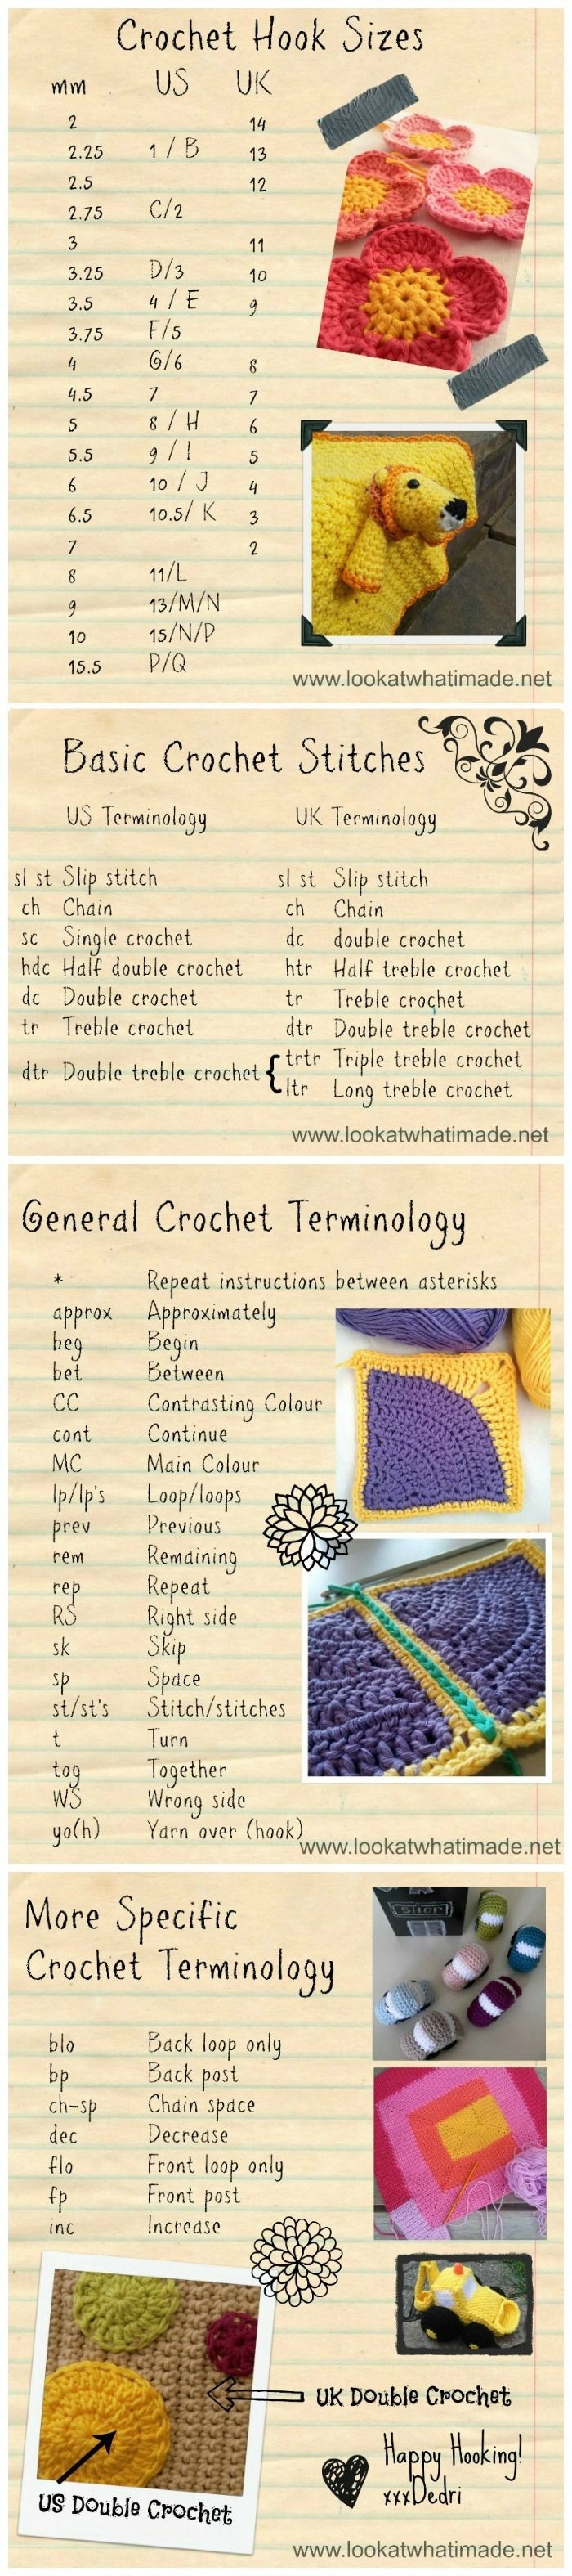 Crochet Terms Fresh 207 Best Images About Baby Crochet Dresses On Pinterest Of Great 42 Photos Crochet Terms